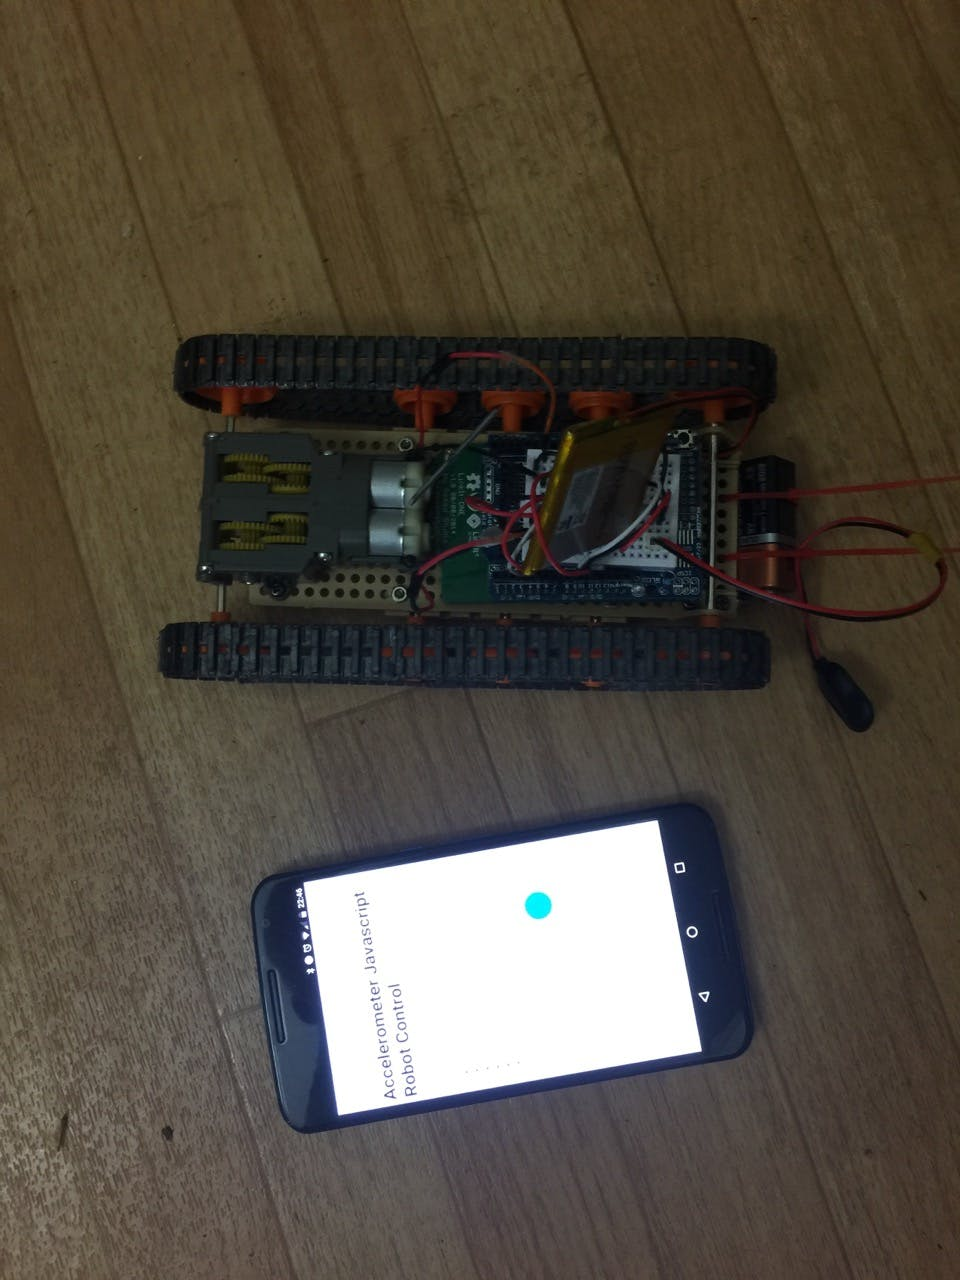 Robot Controlled using HTML5/JavaScript and BeagleBone Green